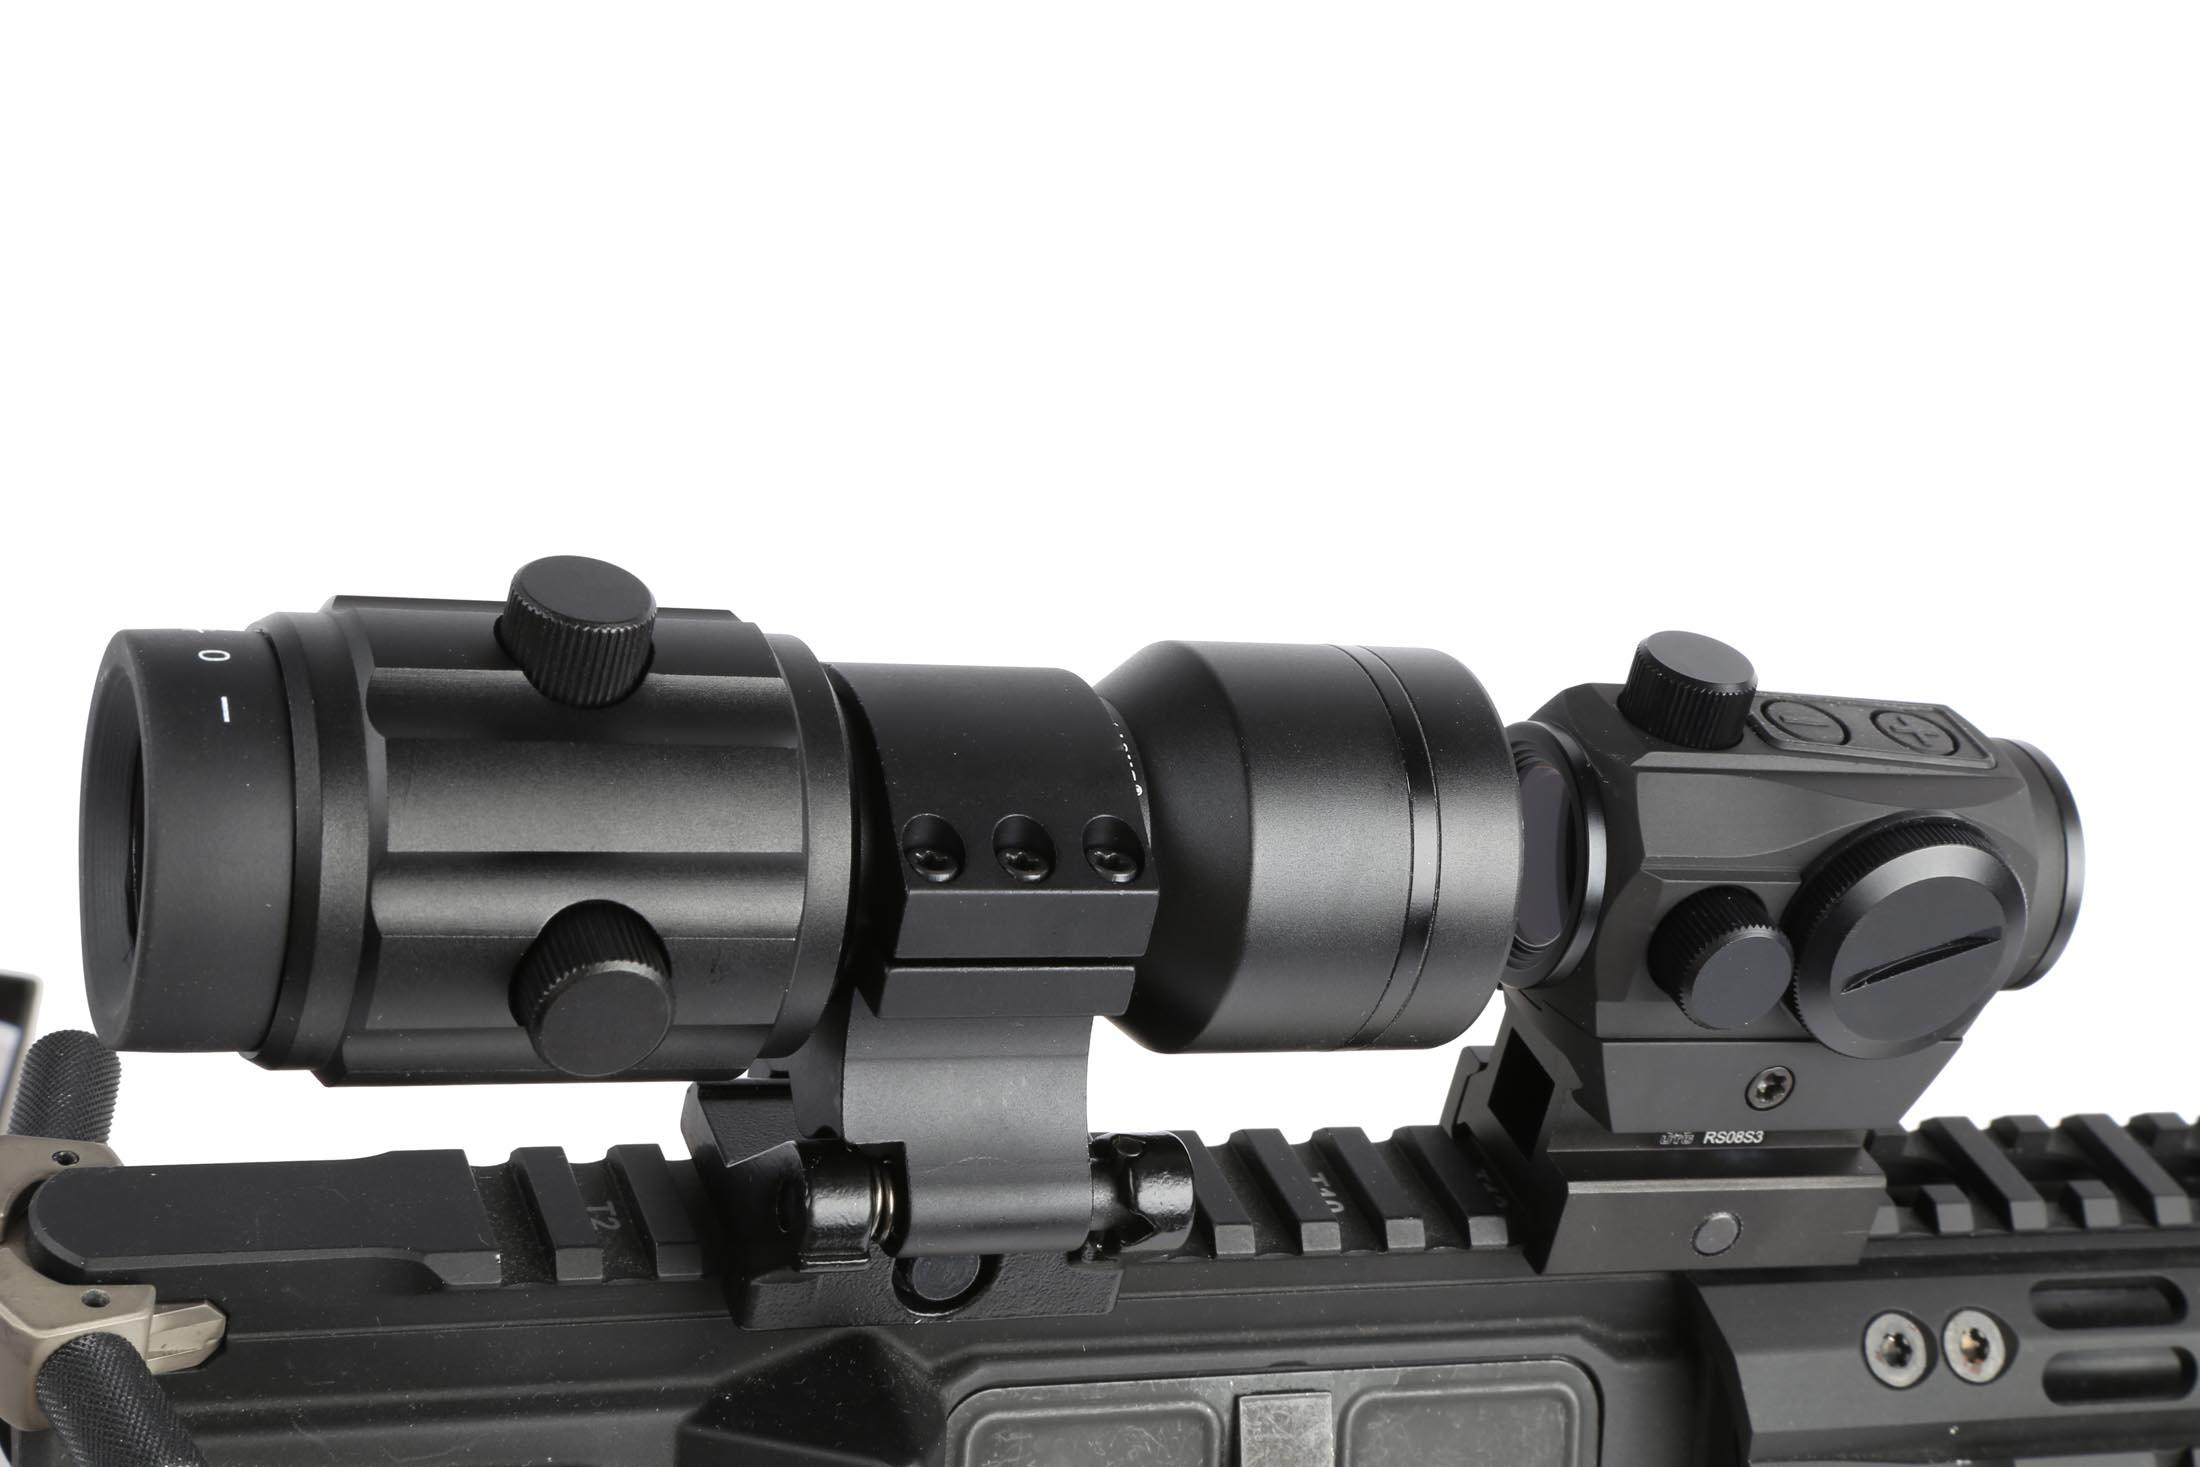 The Primary Arms 6x magnifier for red dot sights attached to an AR15